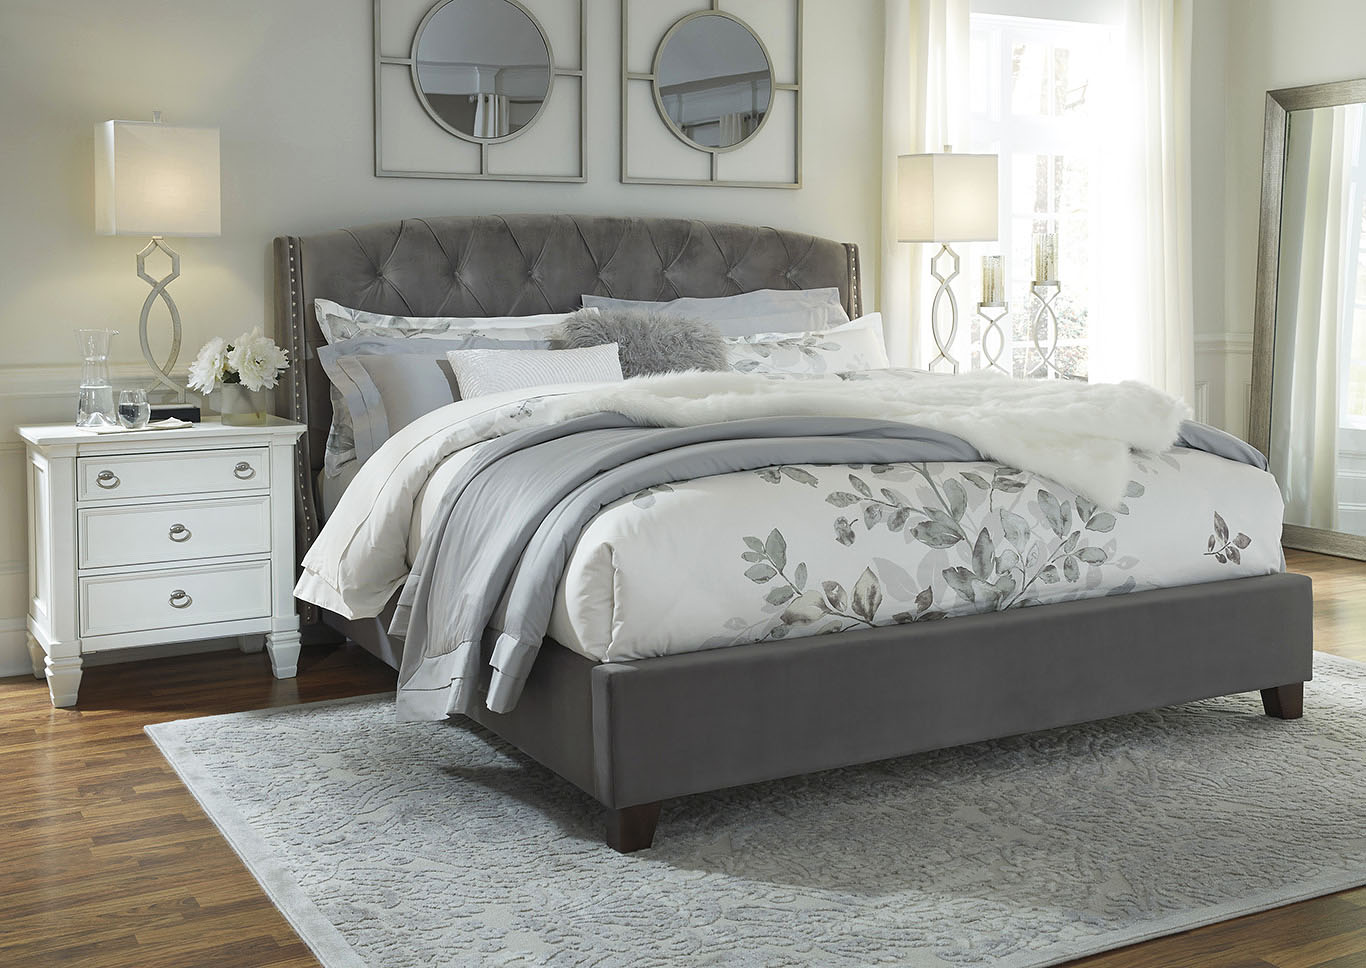 Kasidon Multi California King Upholstered Bed,Signature Design By Ashley